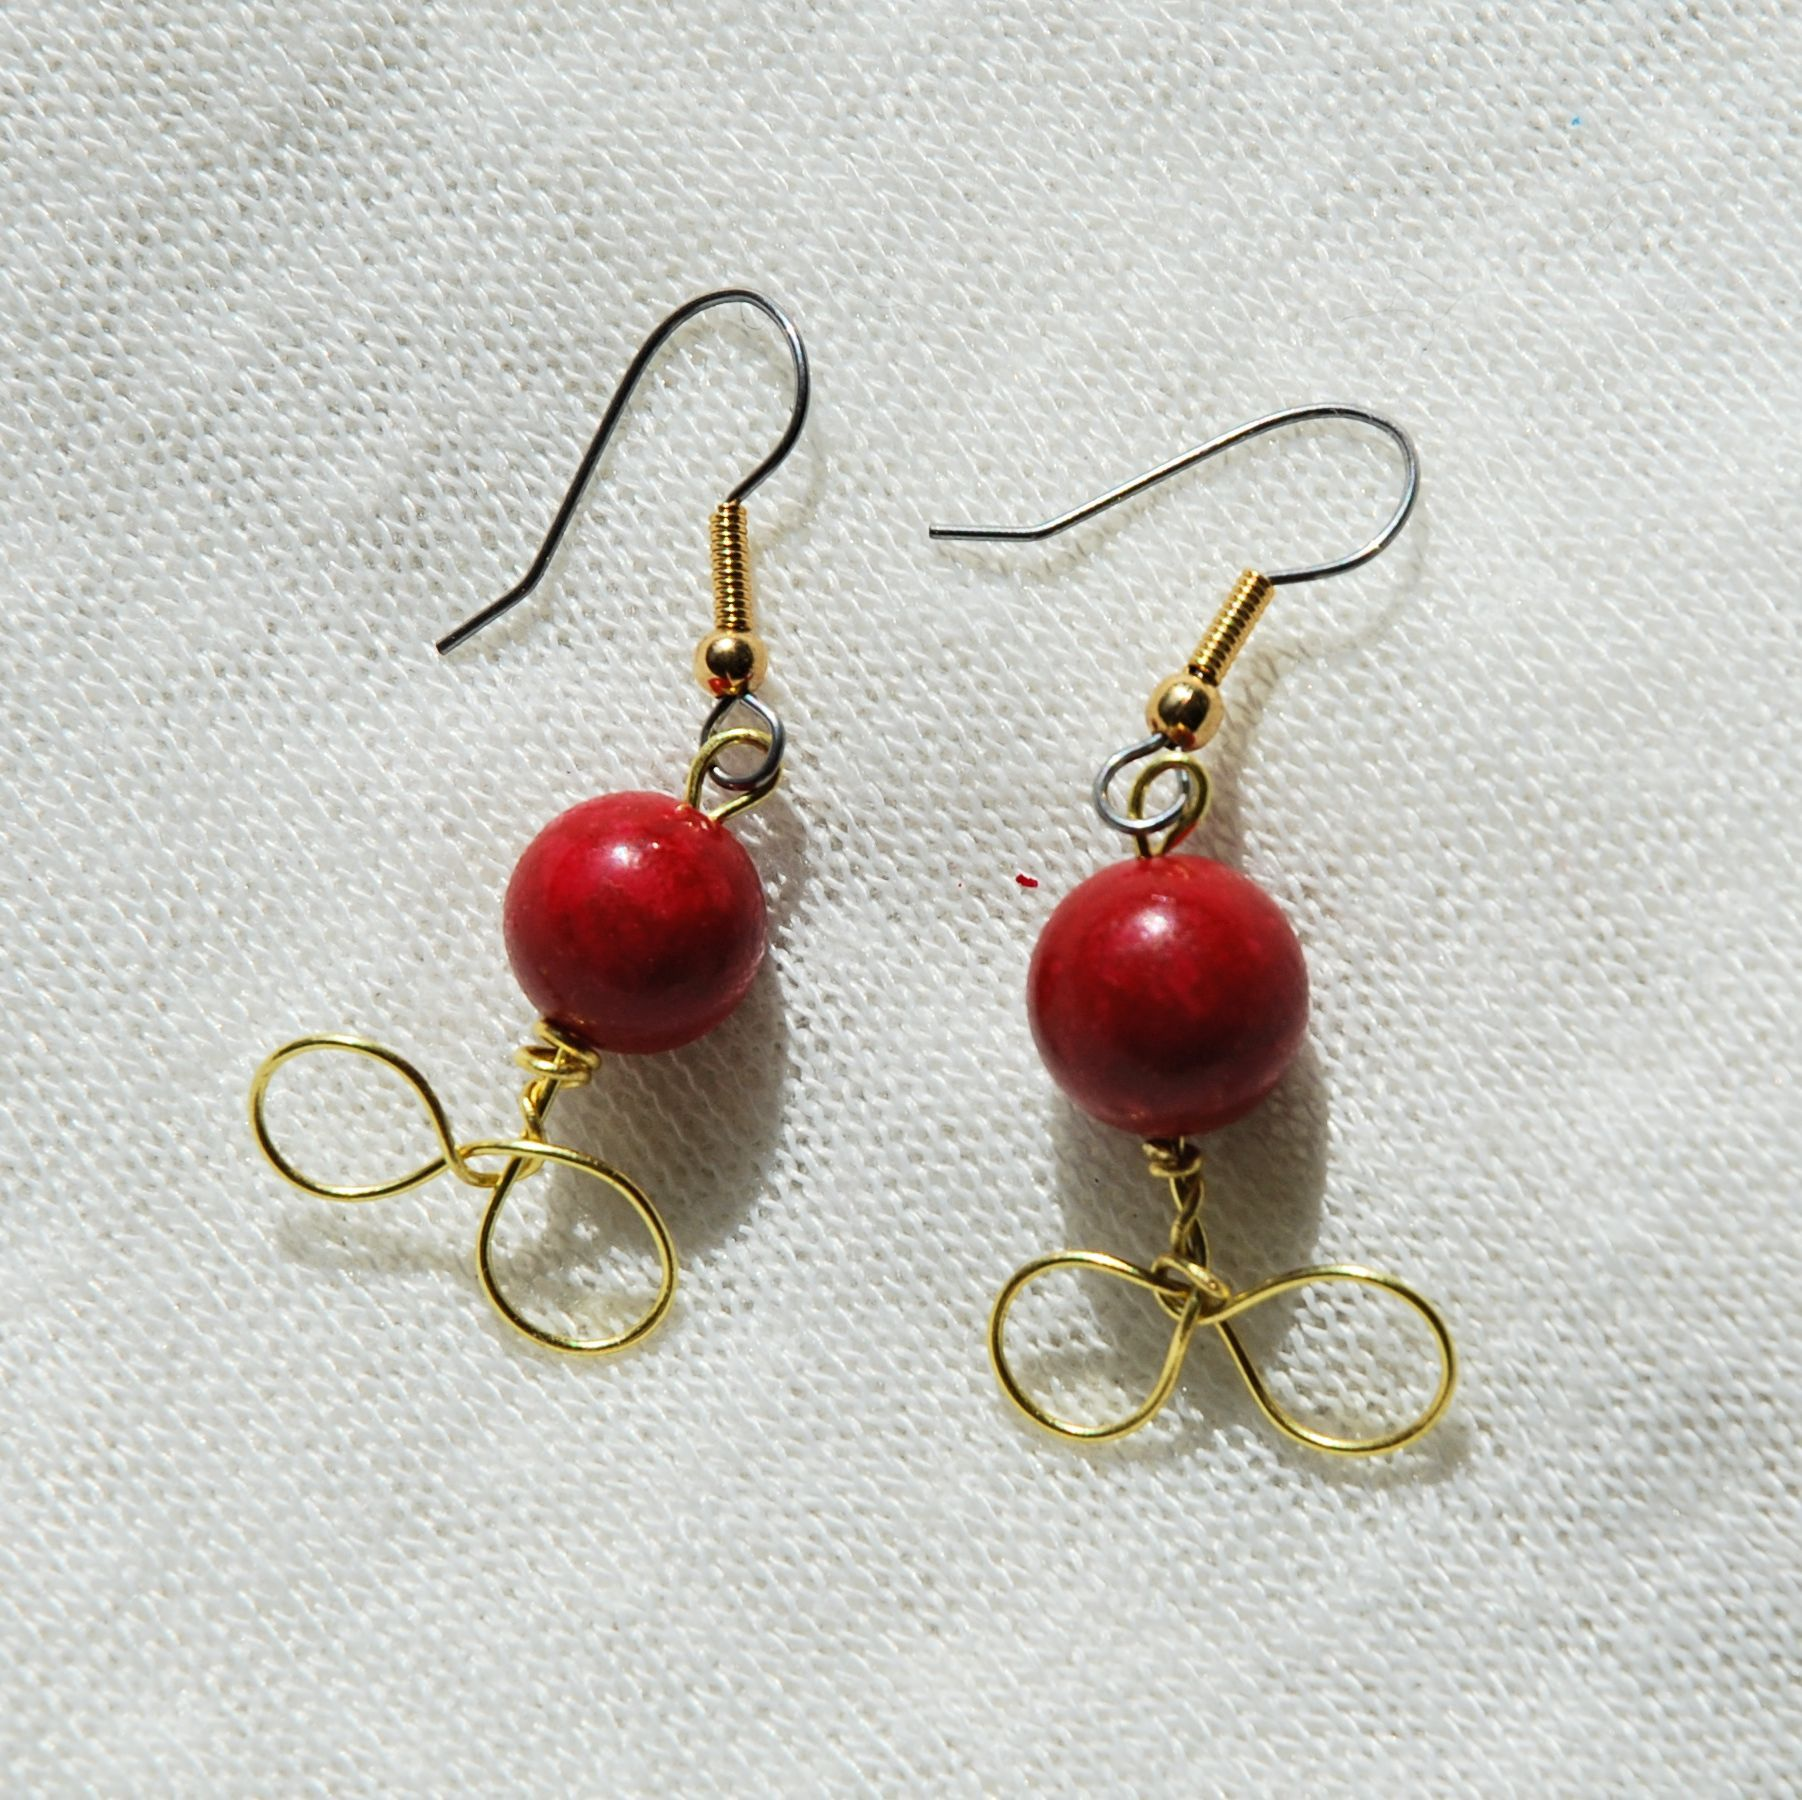 These earrings feature red sphere beads and have a brass wire-wrapped design!